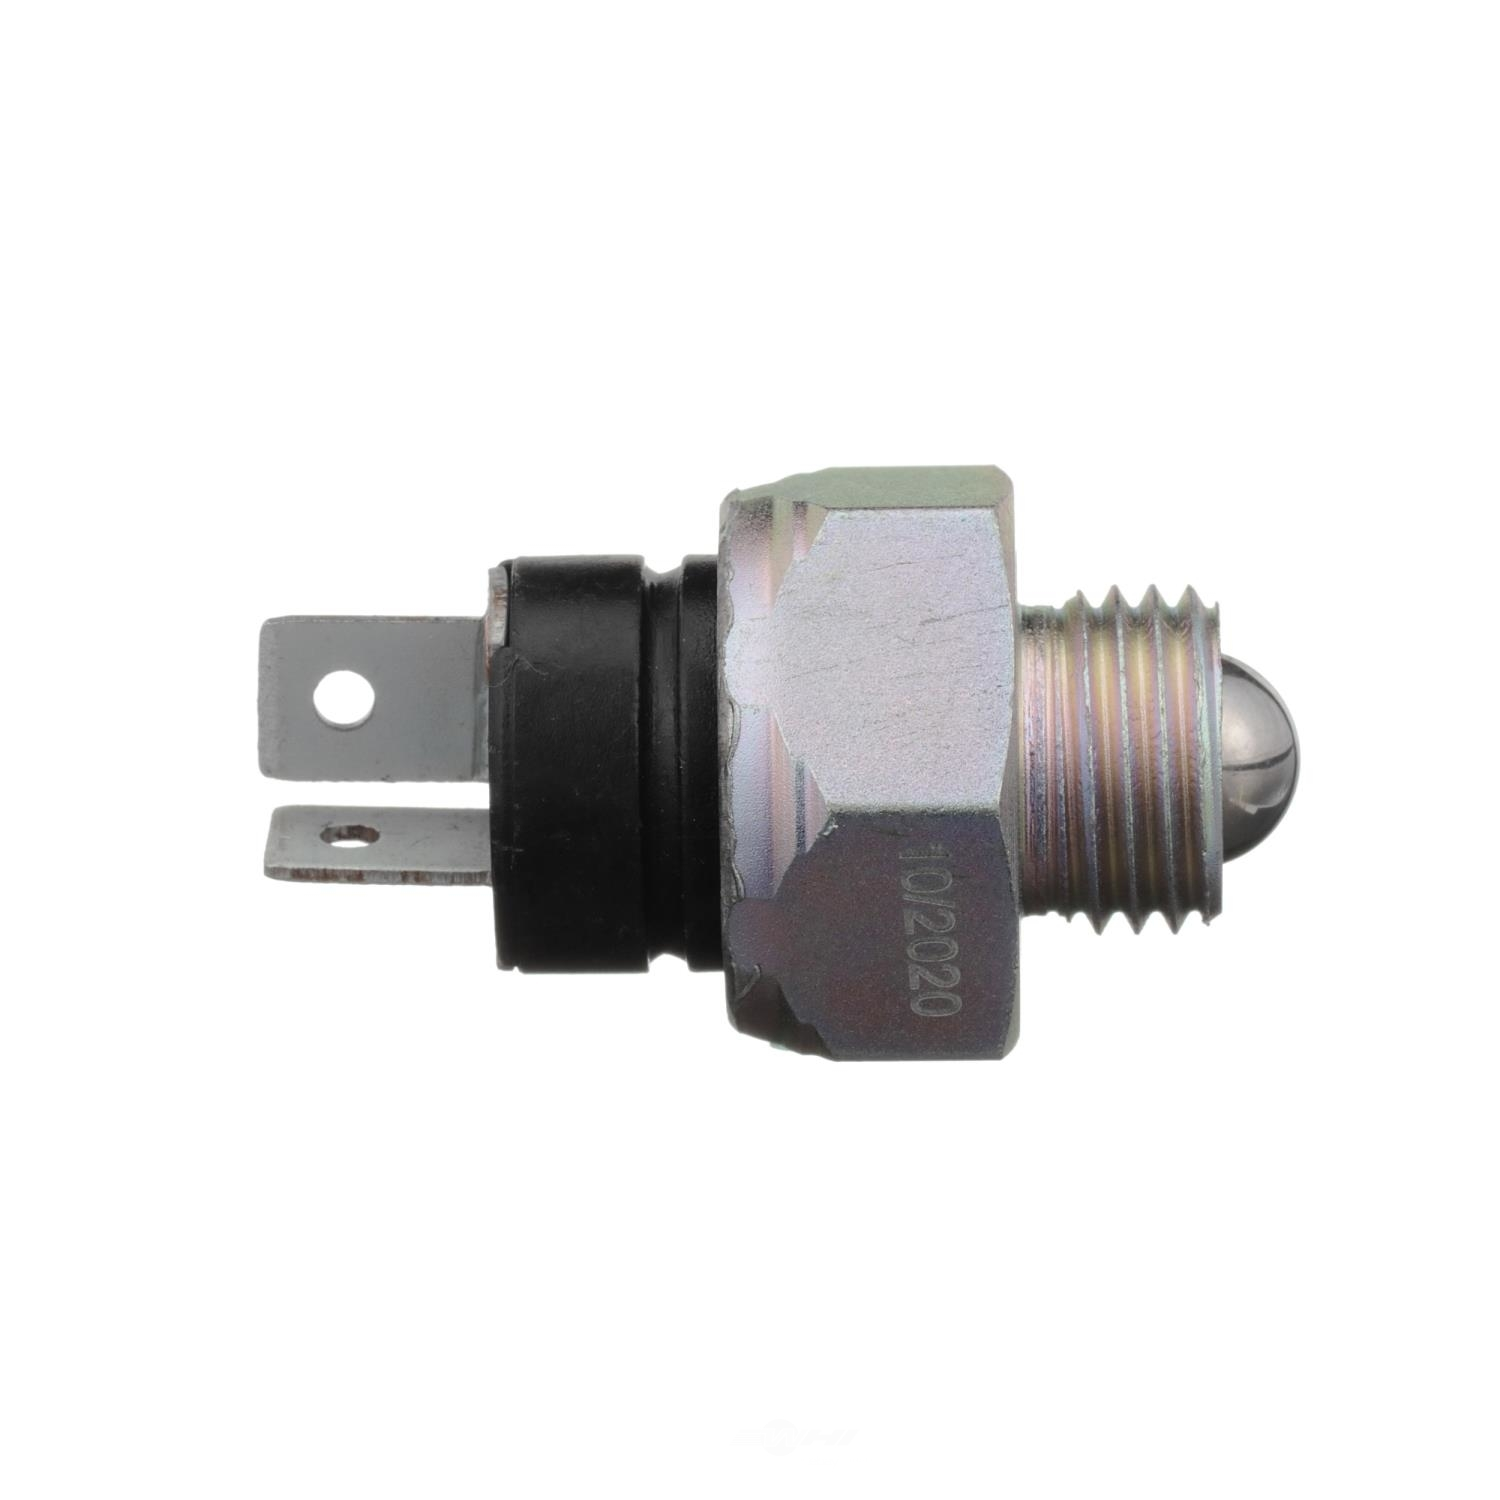 STANDARD T-SERIES - Back Up Lamp Switch - STT NS18T